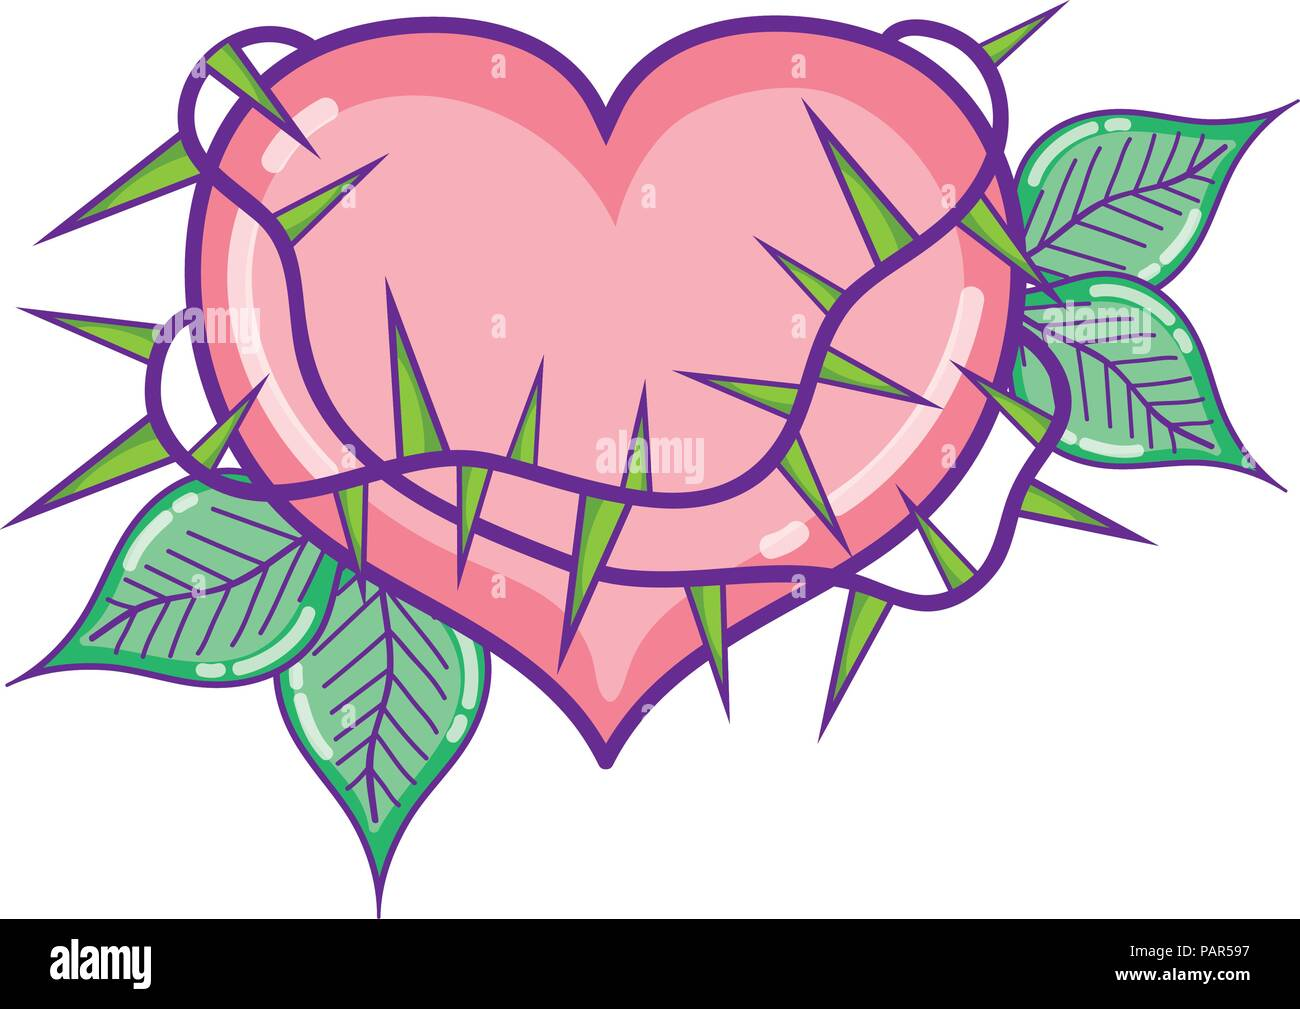 Heart And Thorns Stock Photos & Heart And Thorns Stock Images - Alamy